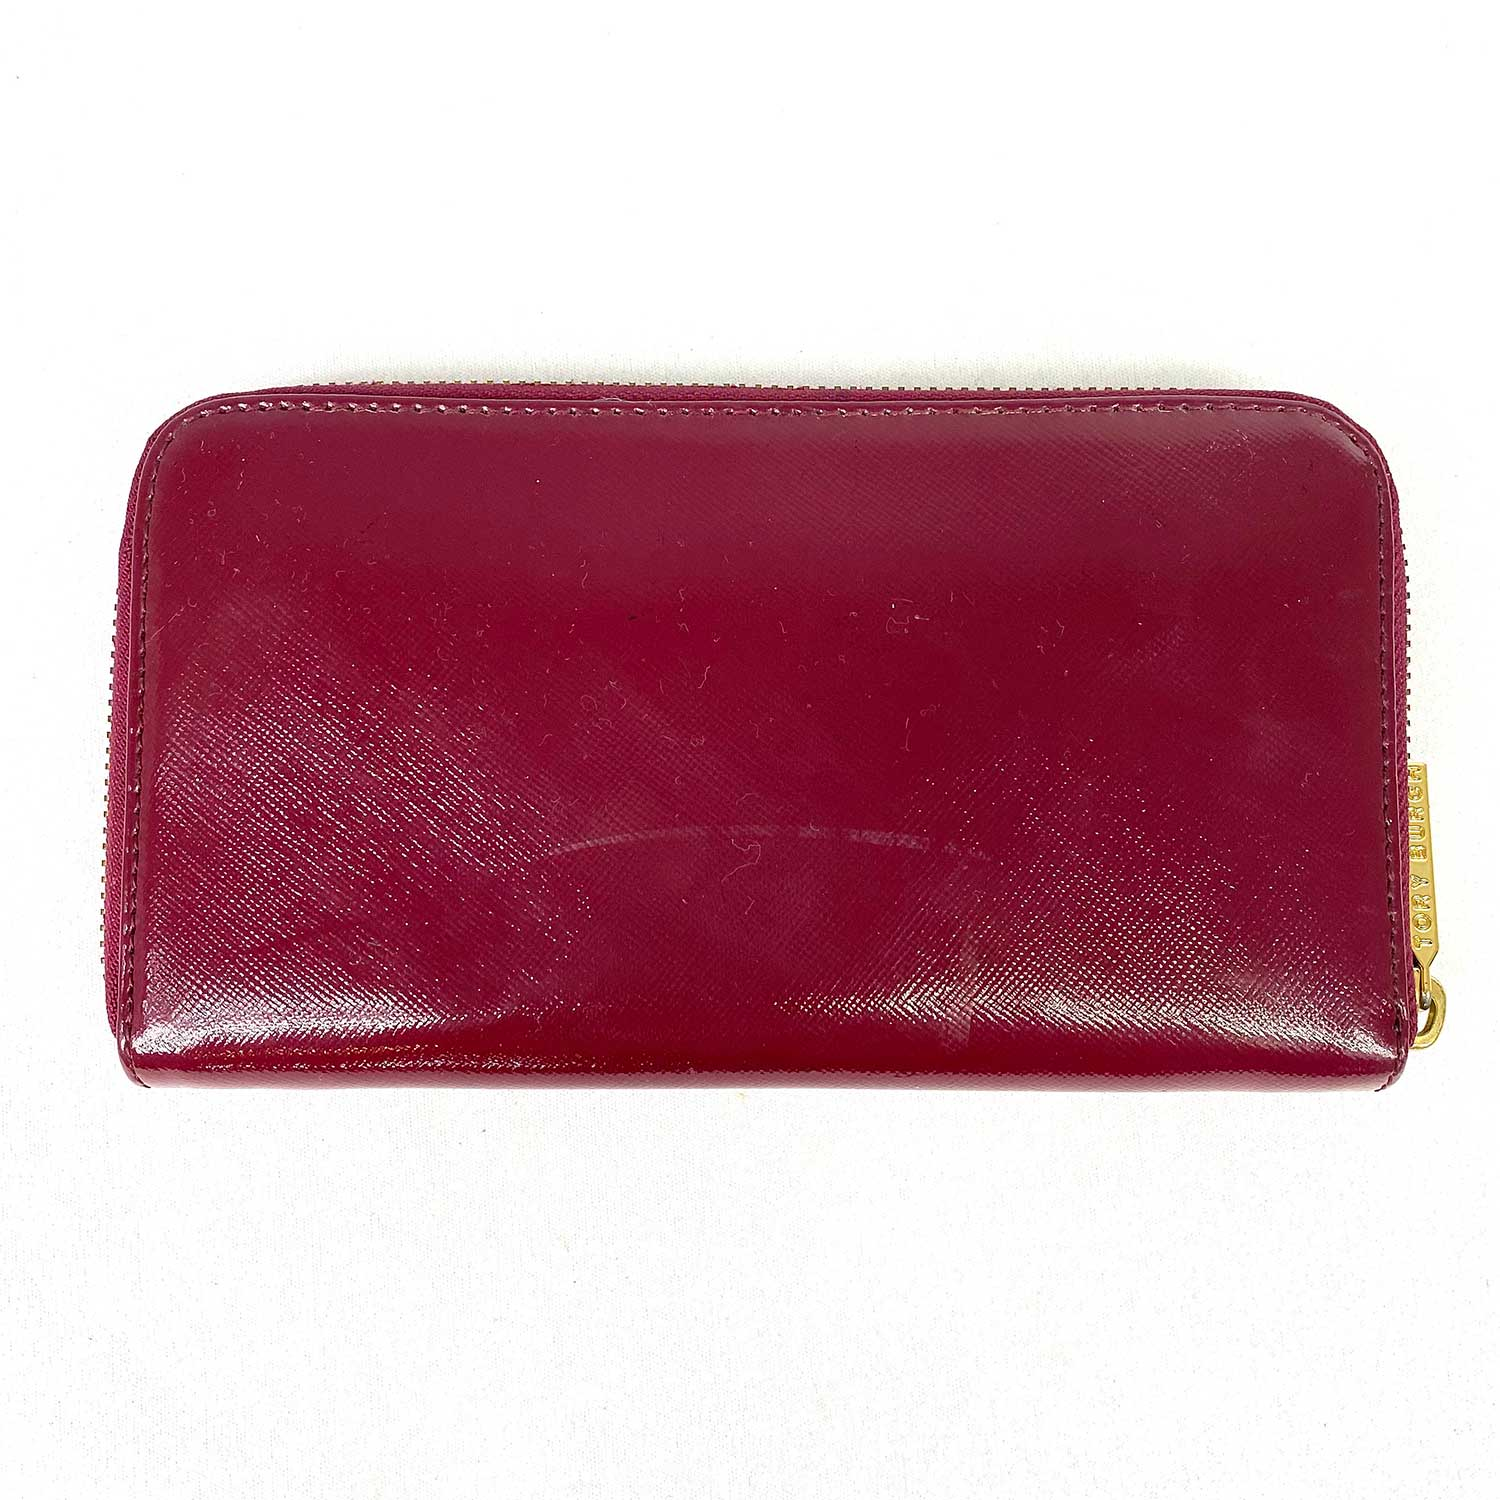 Carteira Tory Burch Burgundy